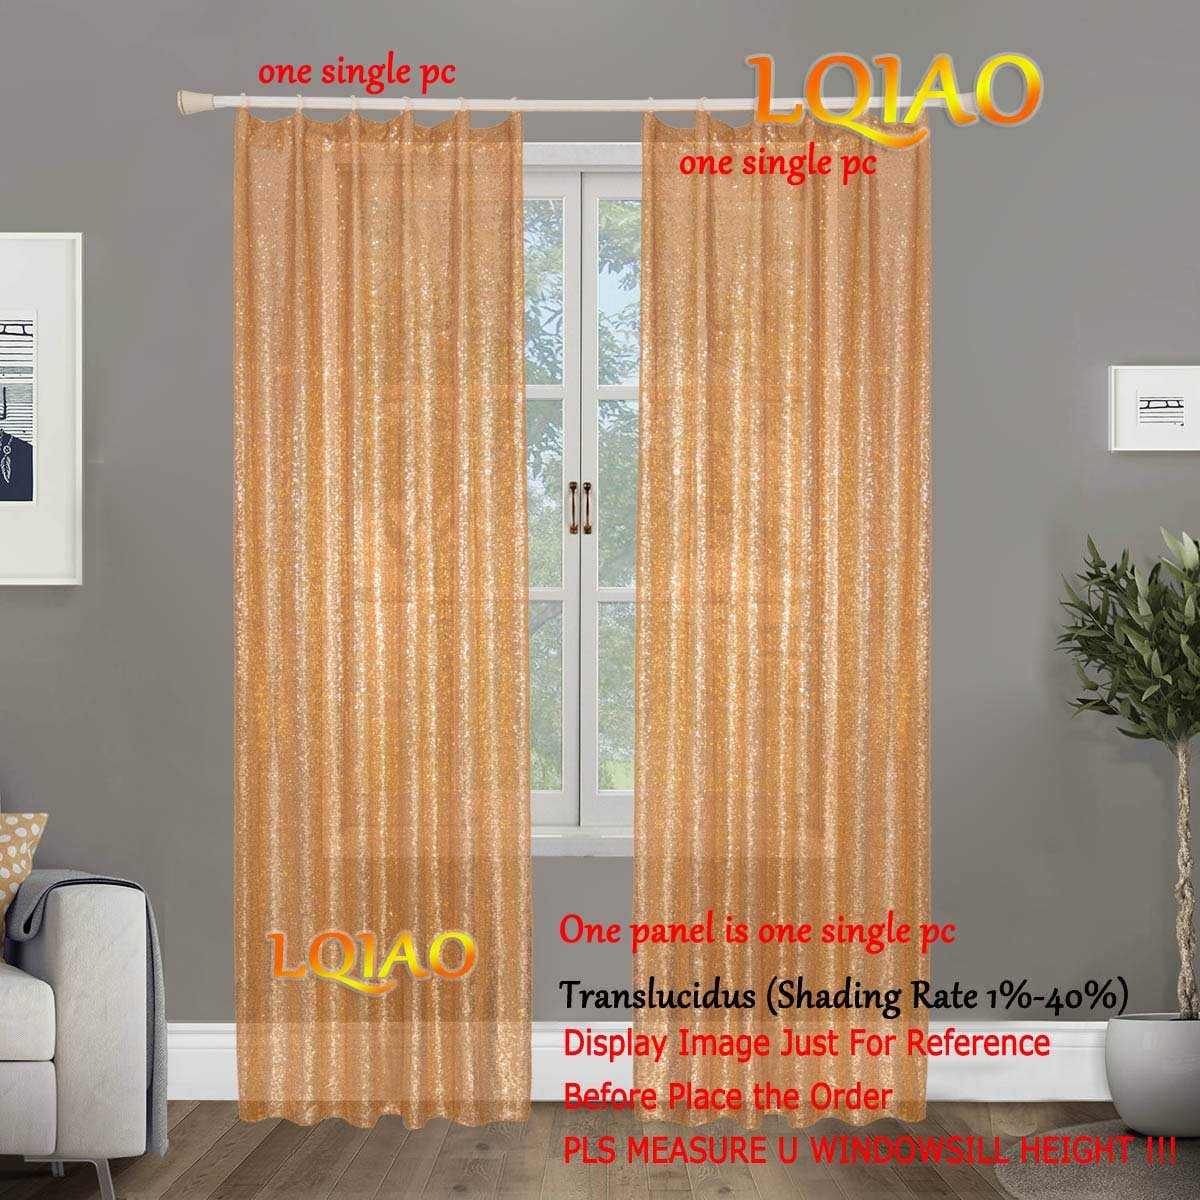 LQIAO 2018 New Sequin Rose Gold Curtains 50x63in Sparkly Rose Gold Fabric Photography Backdrop for Bedroom, Kitchen, Kids Room or Living Room,1 Panel Drapes 50-Inch-by-63-Inch Hooks Style Possible LQfashion Co. Ltd